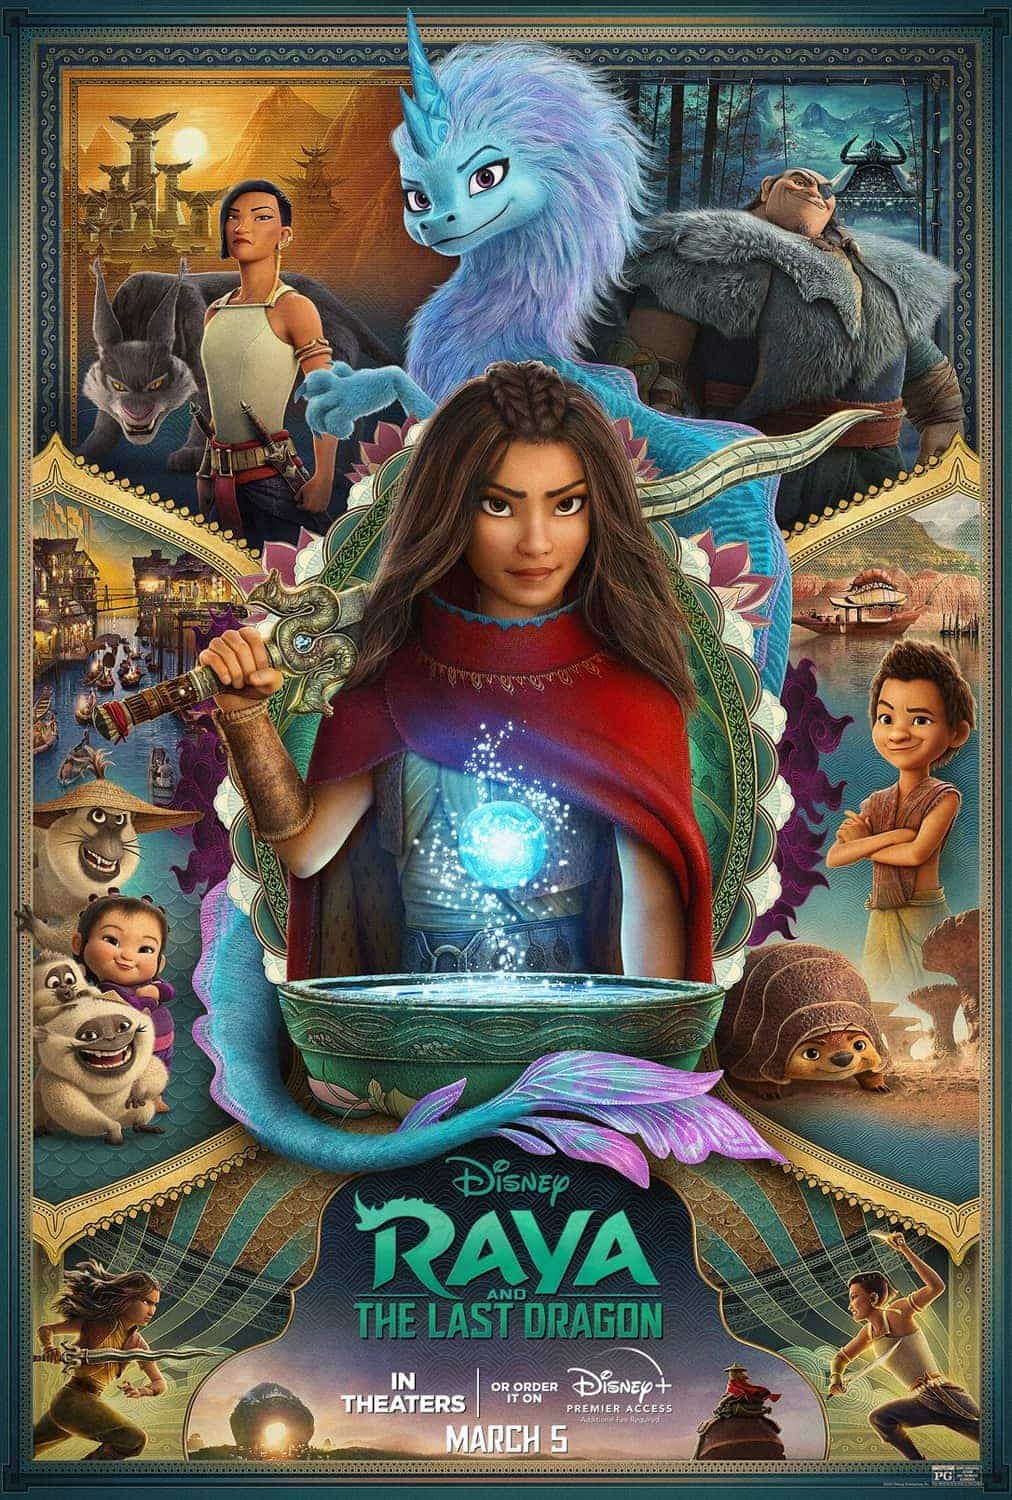 Disney release first poster for Raya And The Last Dragon starring the voice of Awkwafina - movie release date 12th March 2021